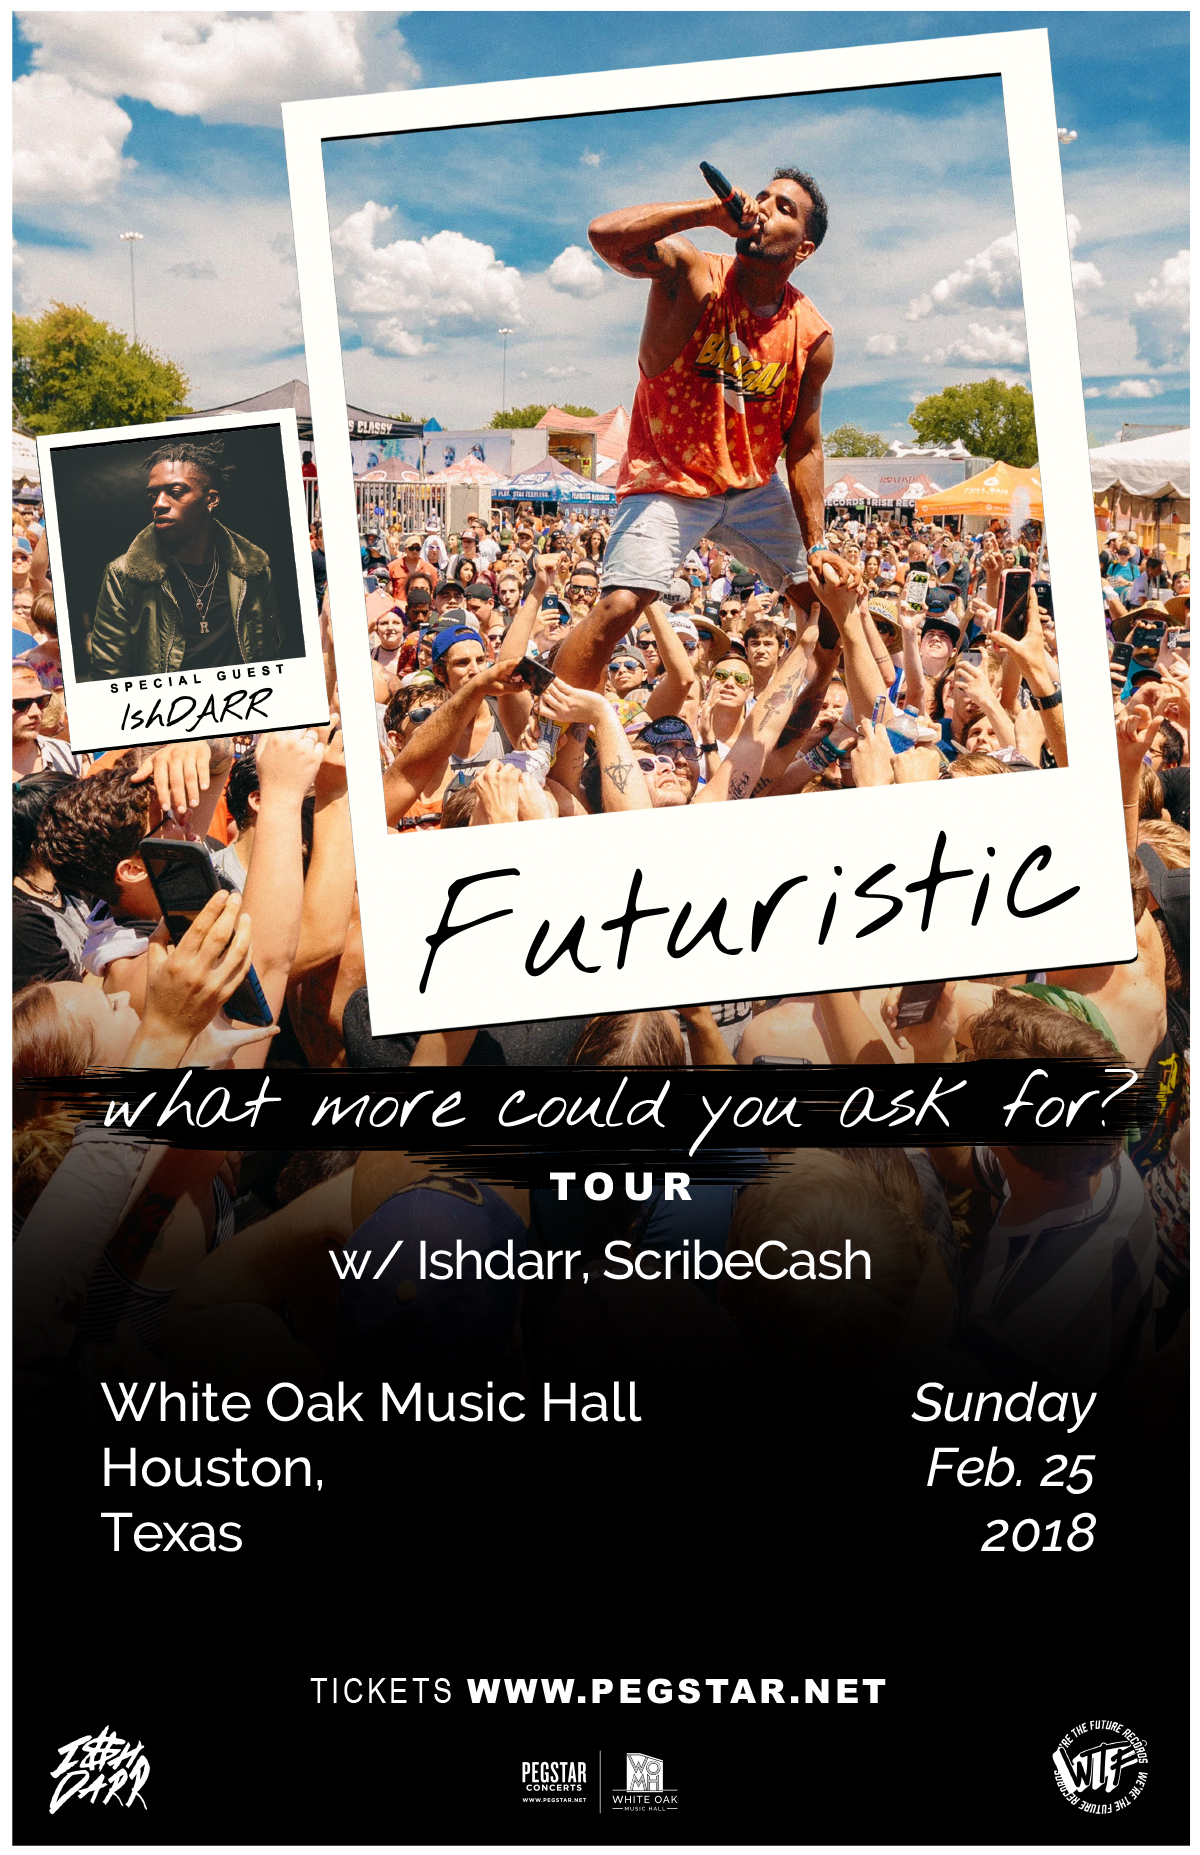 Futuristic:What More Could You Ask For?, Ishdarr, ScribeCash